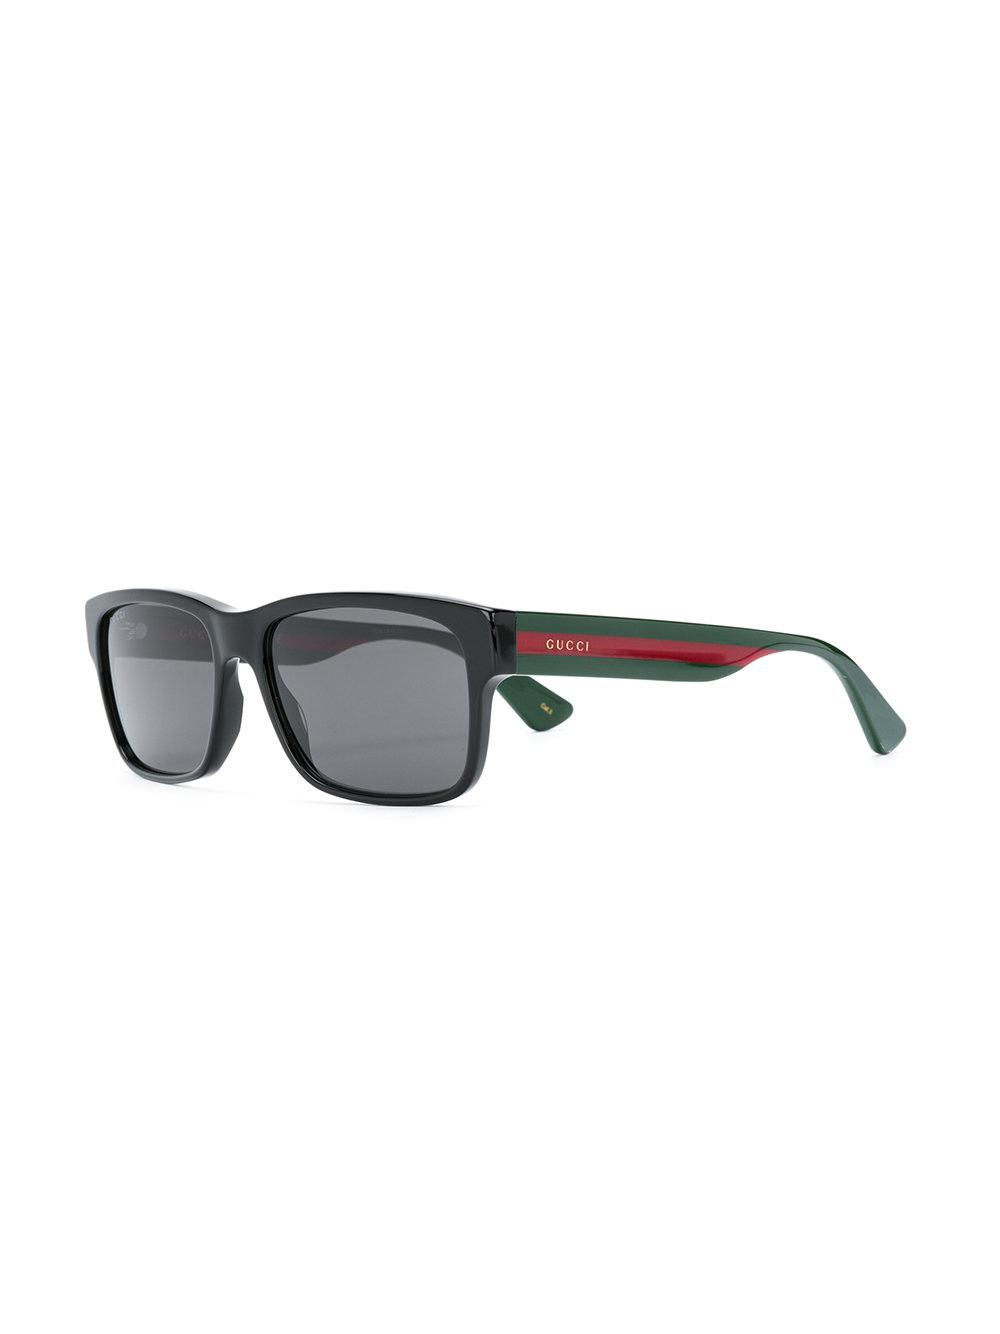 62f8b96df0 Gucci Square Frame Sunglasses in Green for Men - Lyst